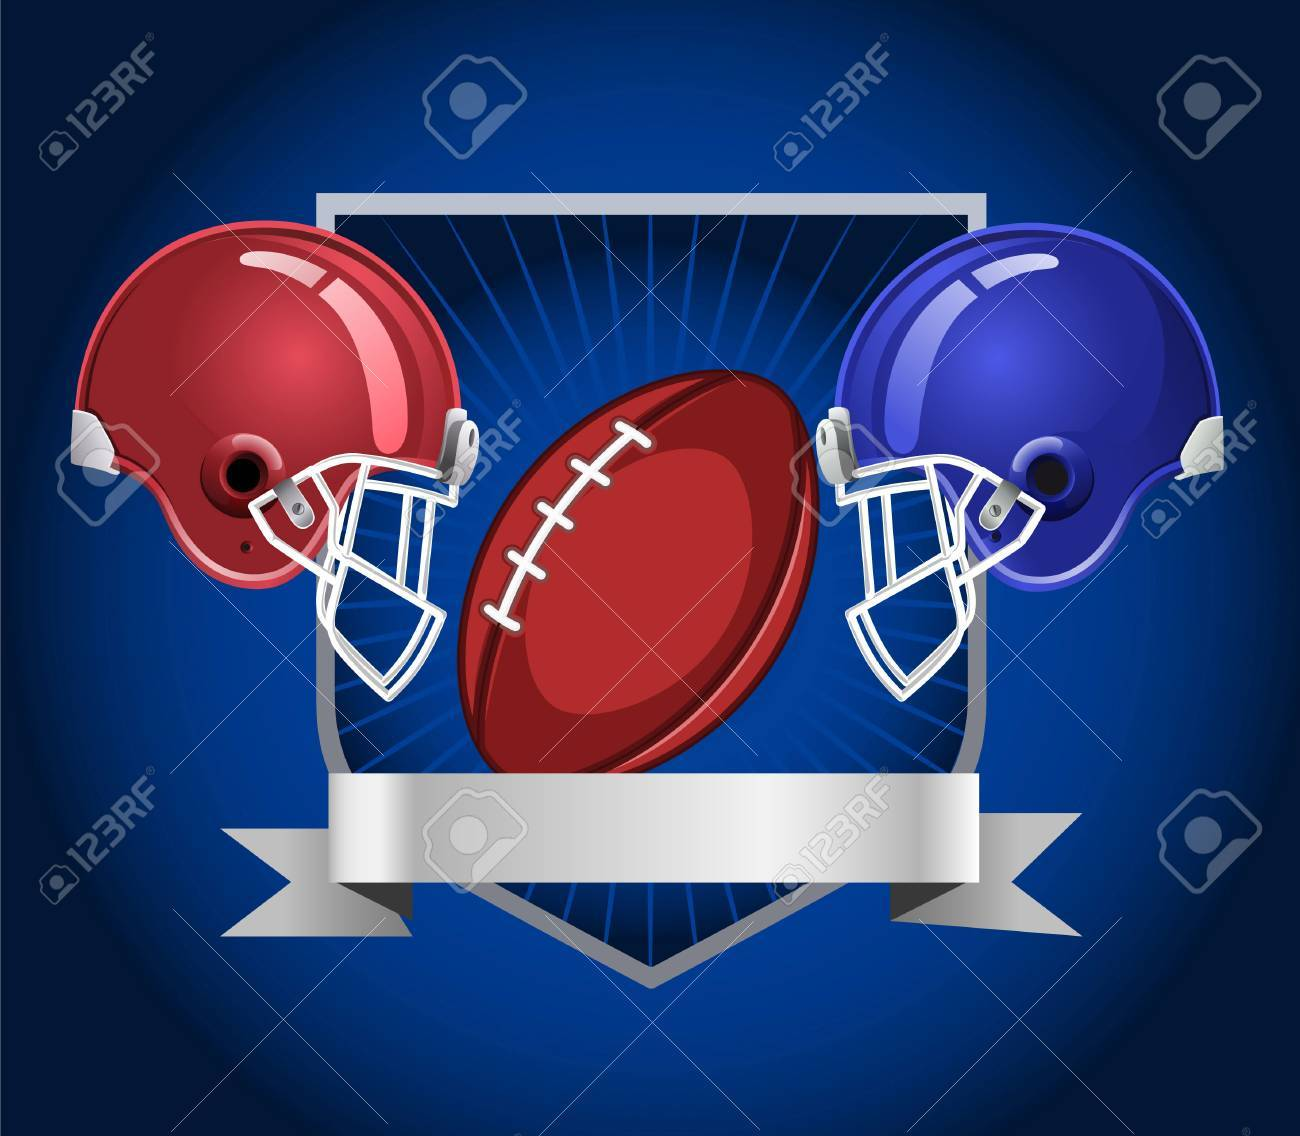 Football Helmets Blue Background Royalty Free Cliparts Vectors And Stock Illustration Image 34235095